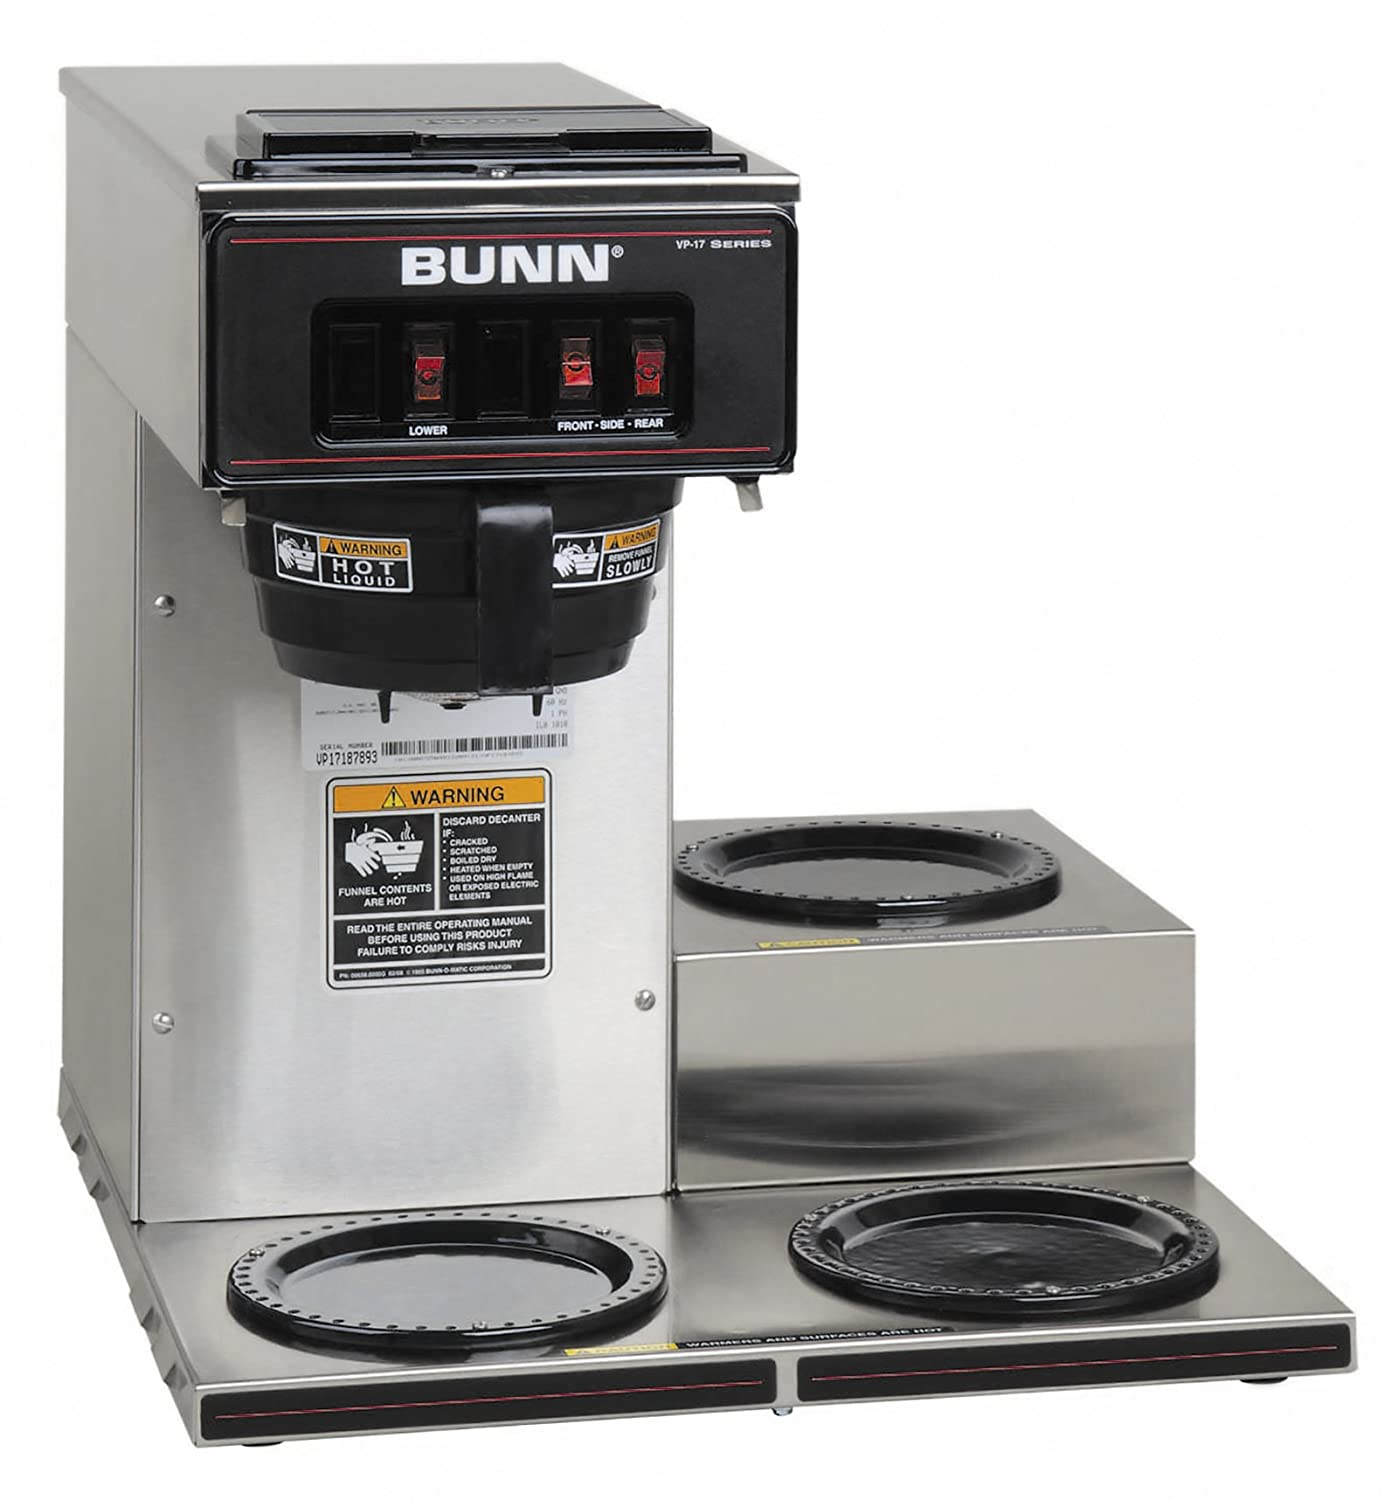 BUNN 13300.0003 VP17-3SS3L Pourover Commercial Coffee Brewer with 3 Lower Warmers, Stainless Steel (120V/60/1PH) 71ieextr-FL._SL1500_